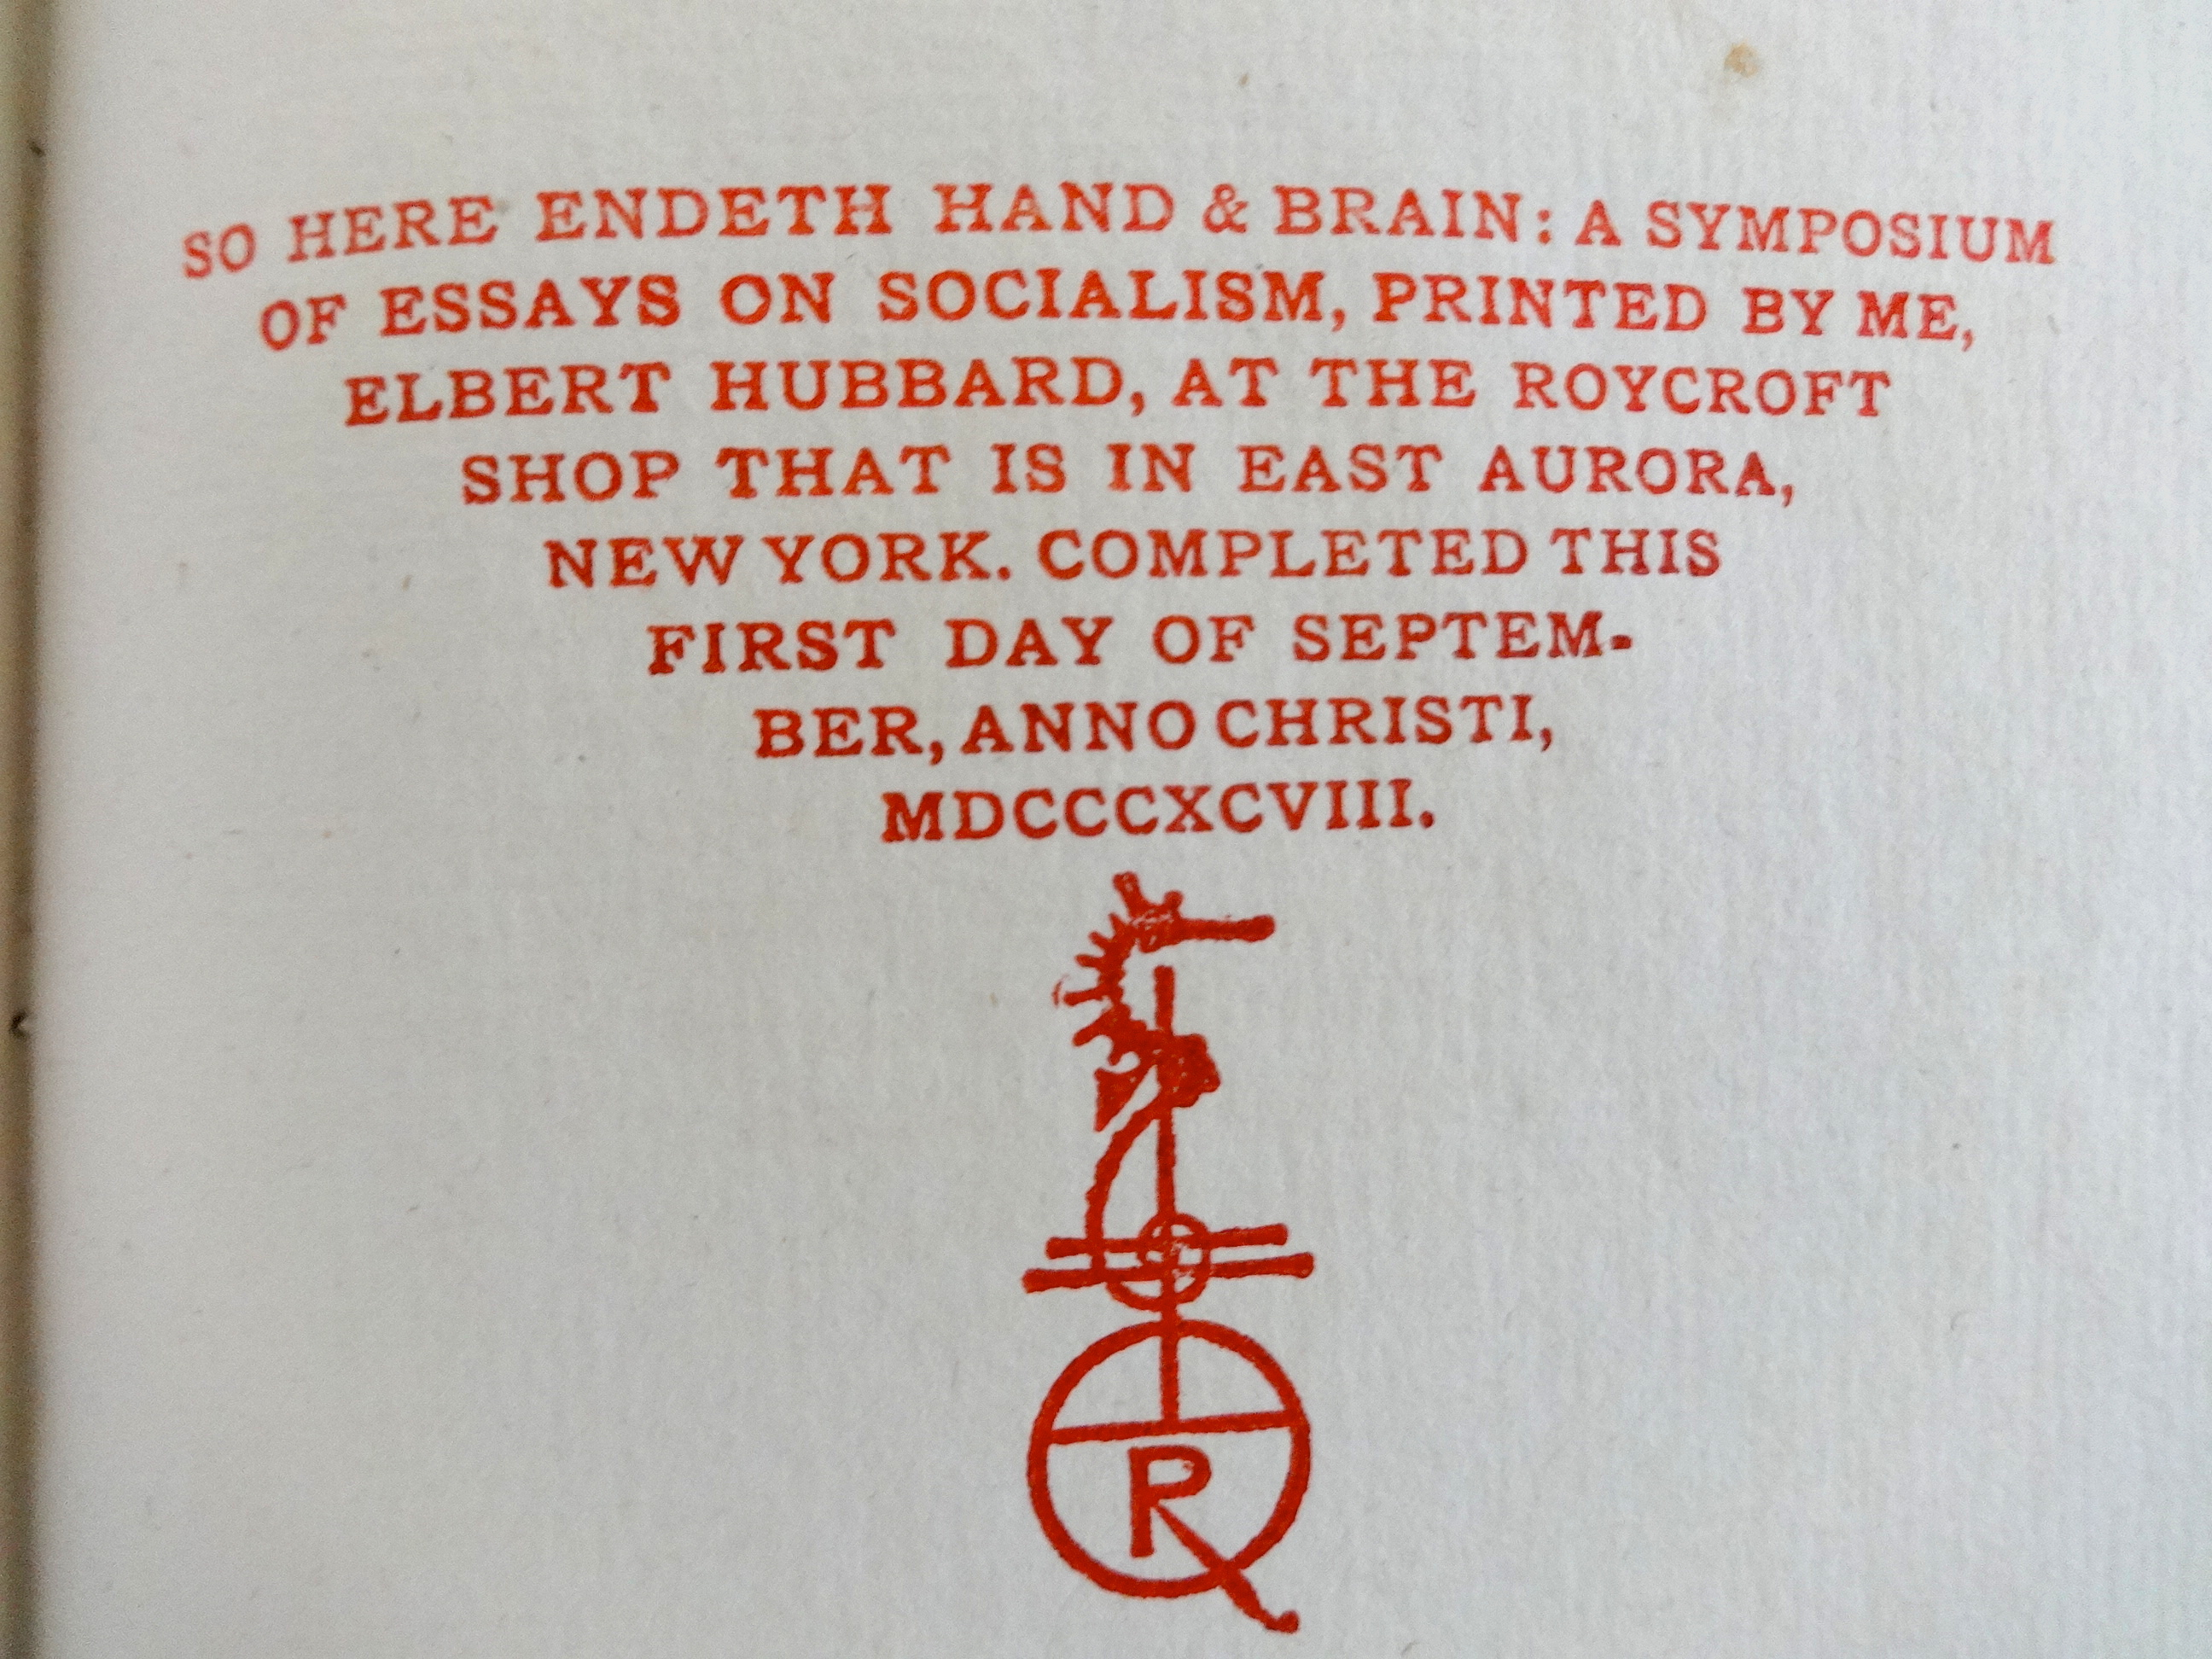 hand and brain roycroft book denslow seahorse logotype